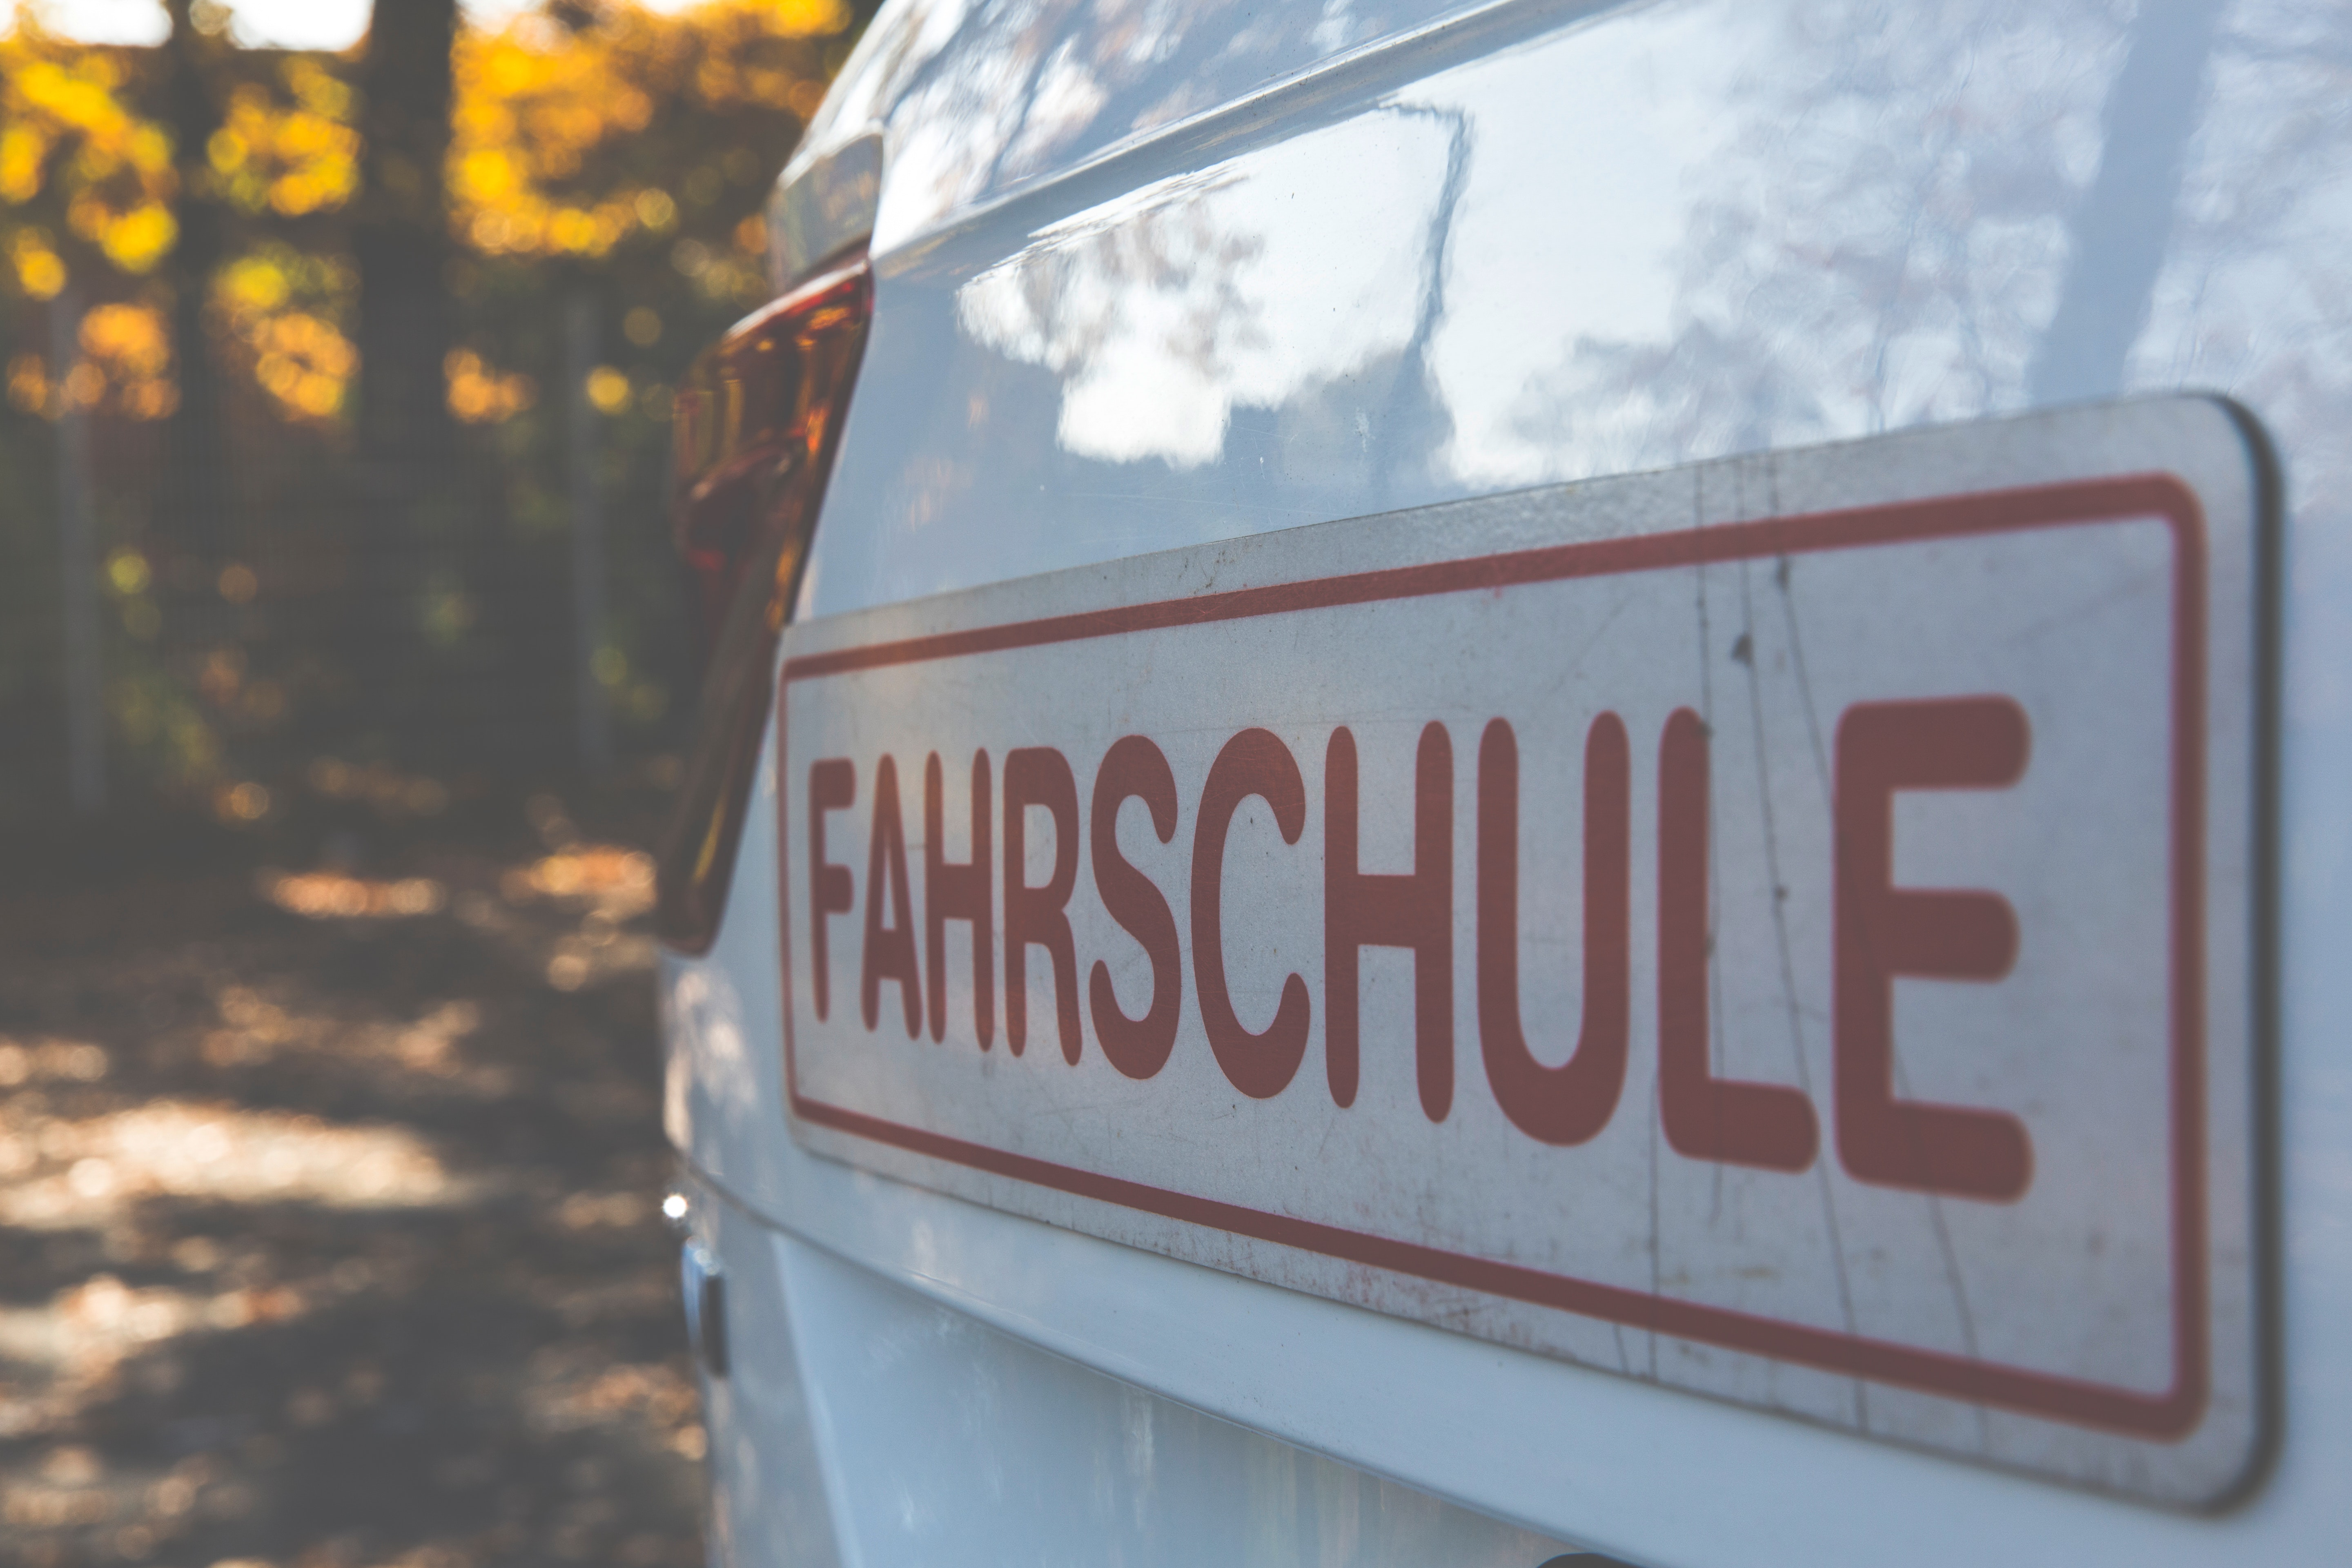 Fahrschule Signboard, Automobile, Turn signal, Trees, Travel, HQ Photo